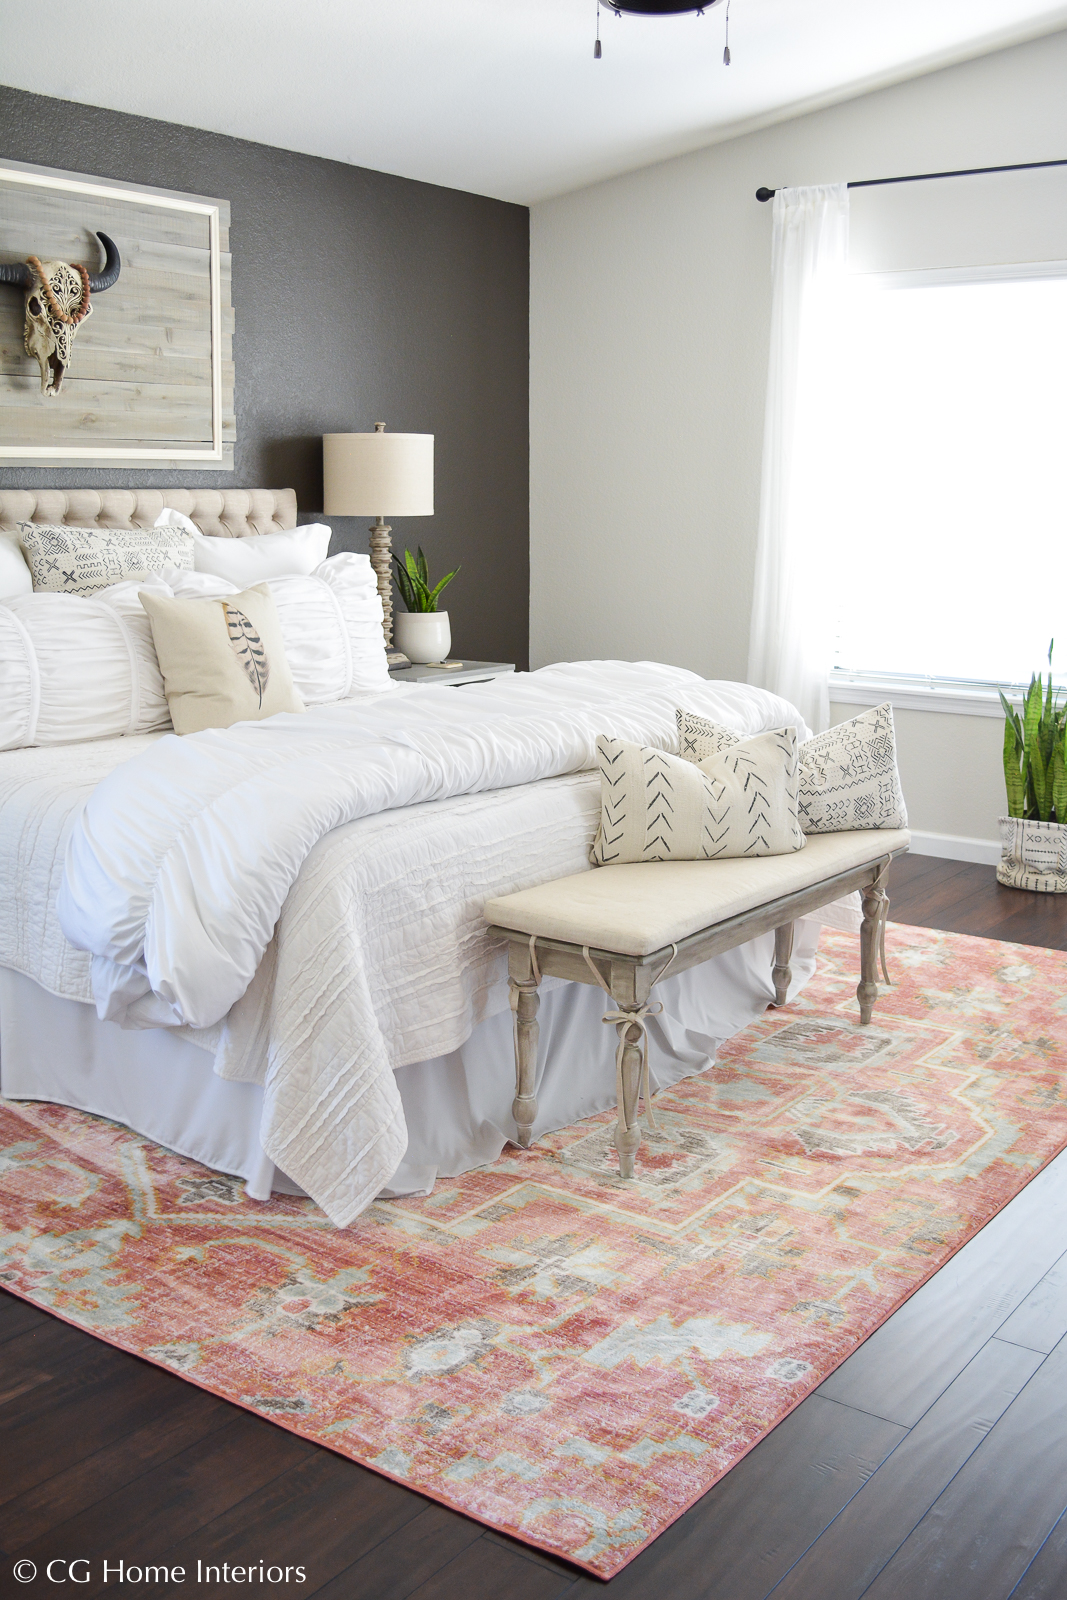 How to keep a tidy home, make the bed